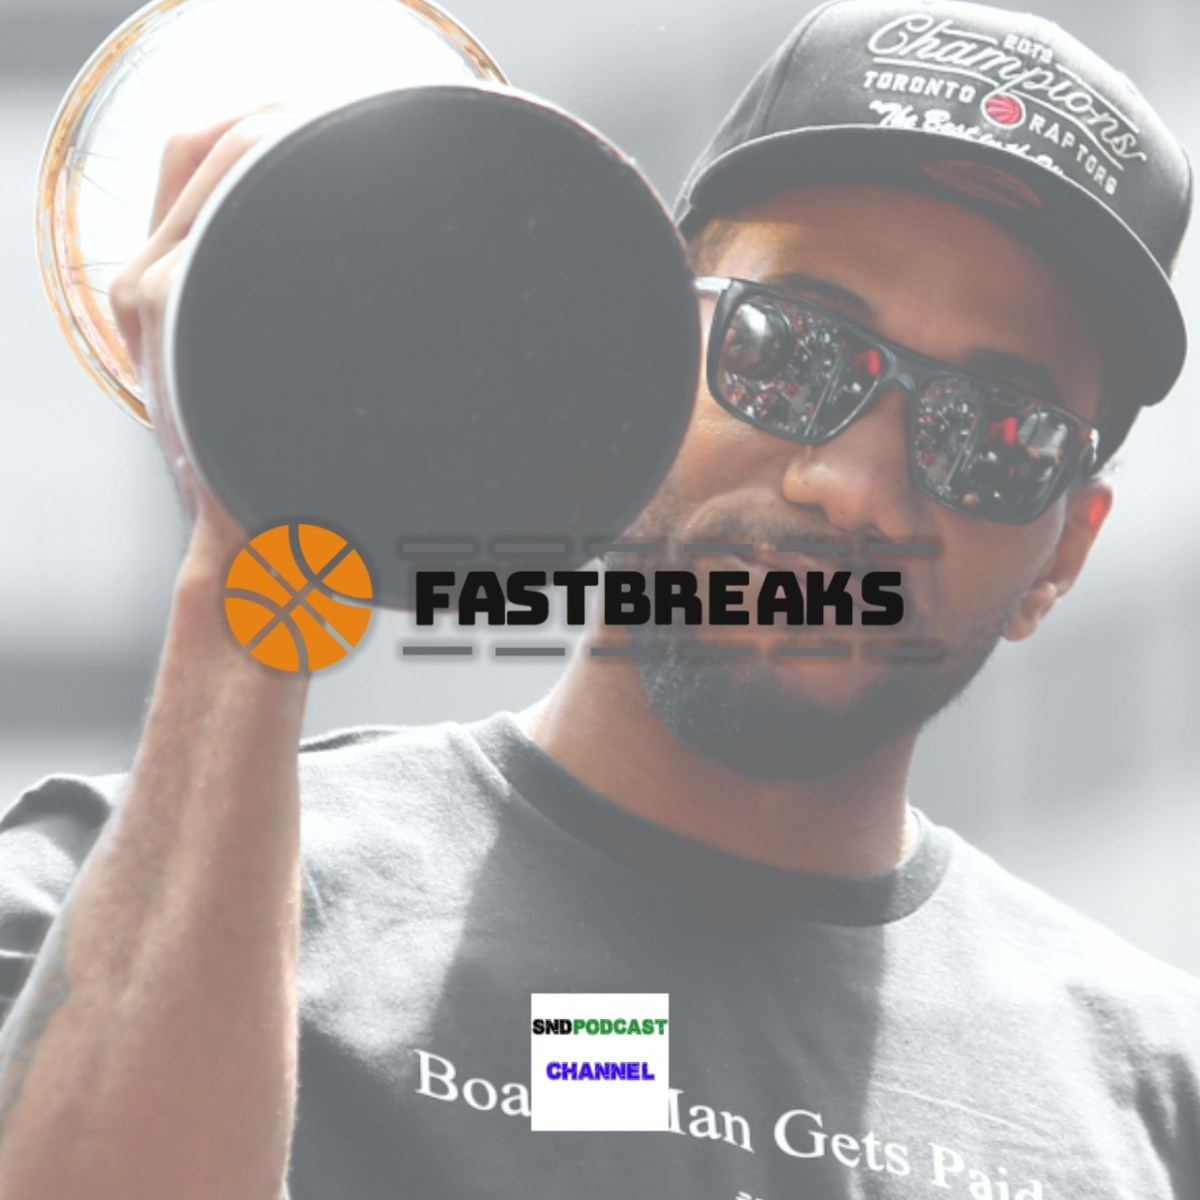 FASTBREAKS EP. 22 Presented By The Soapbox: Oh Canada…